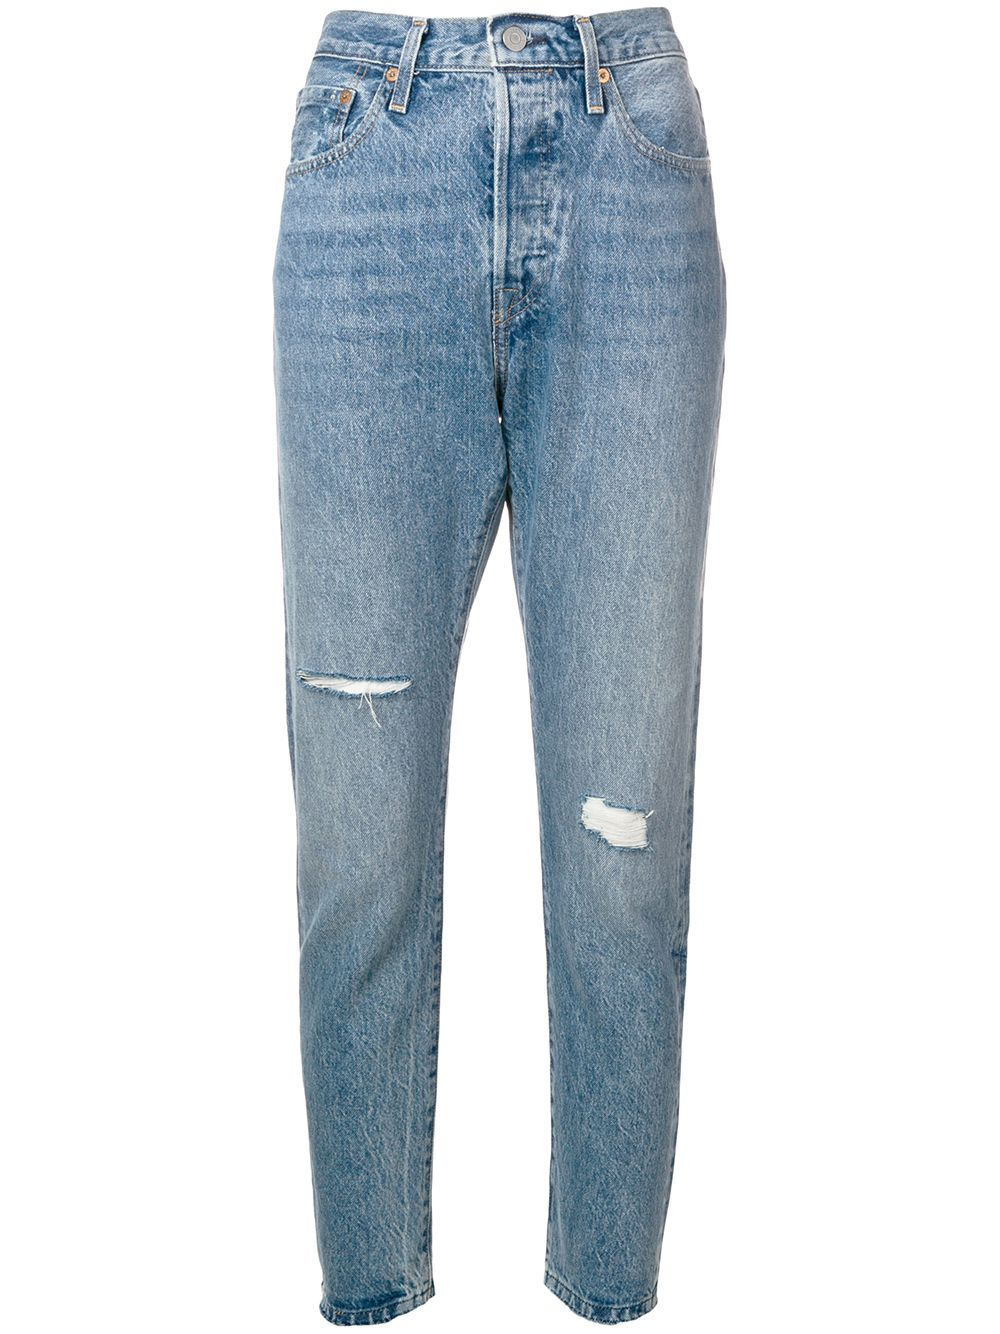 74a553ea3b1 Levi s  Made   Crafted distressed cropped jeans - Blue - Glami.cz